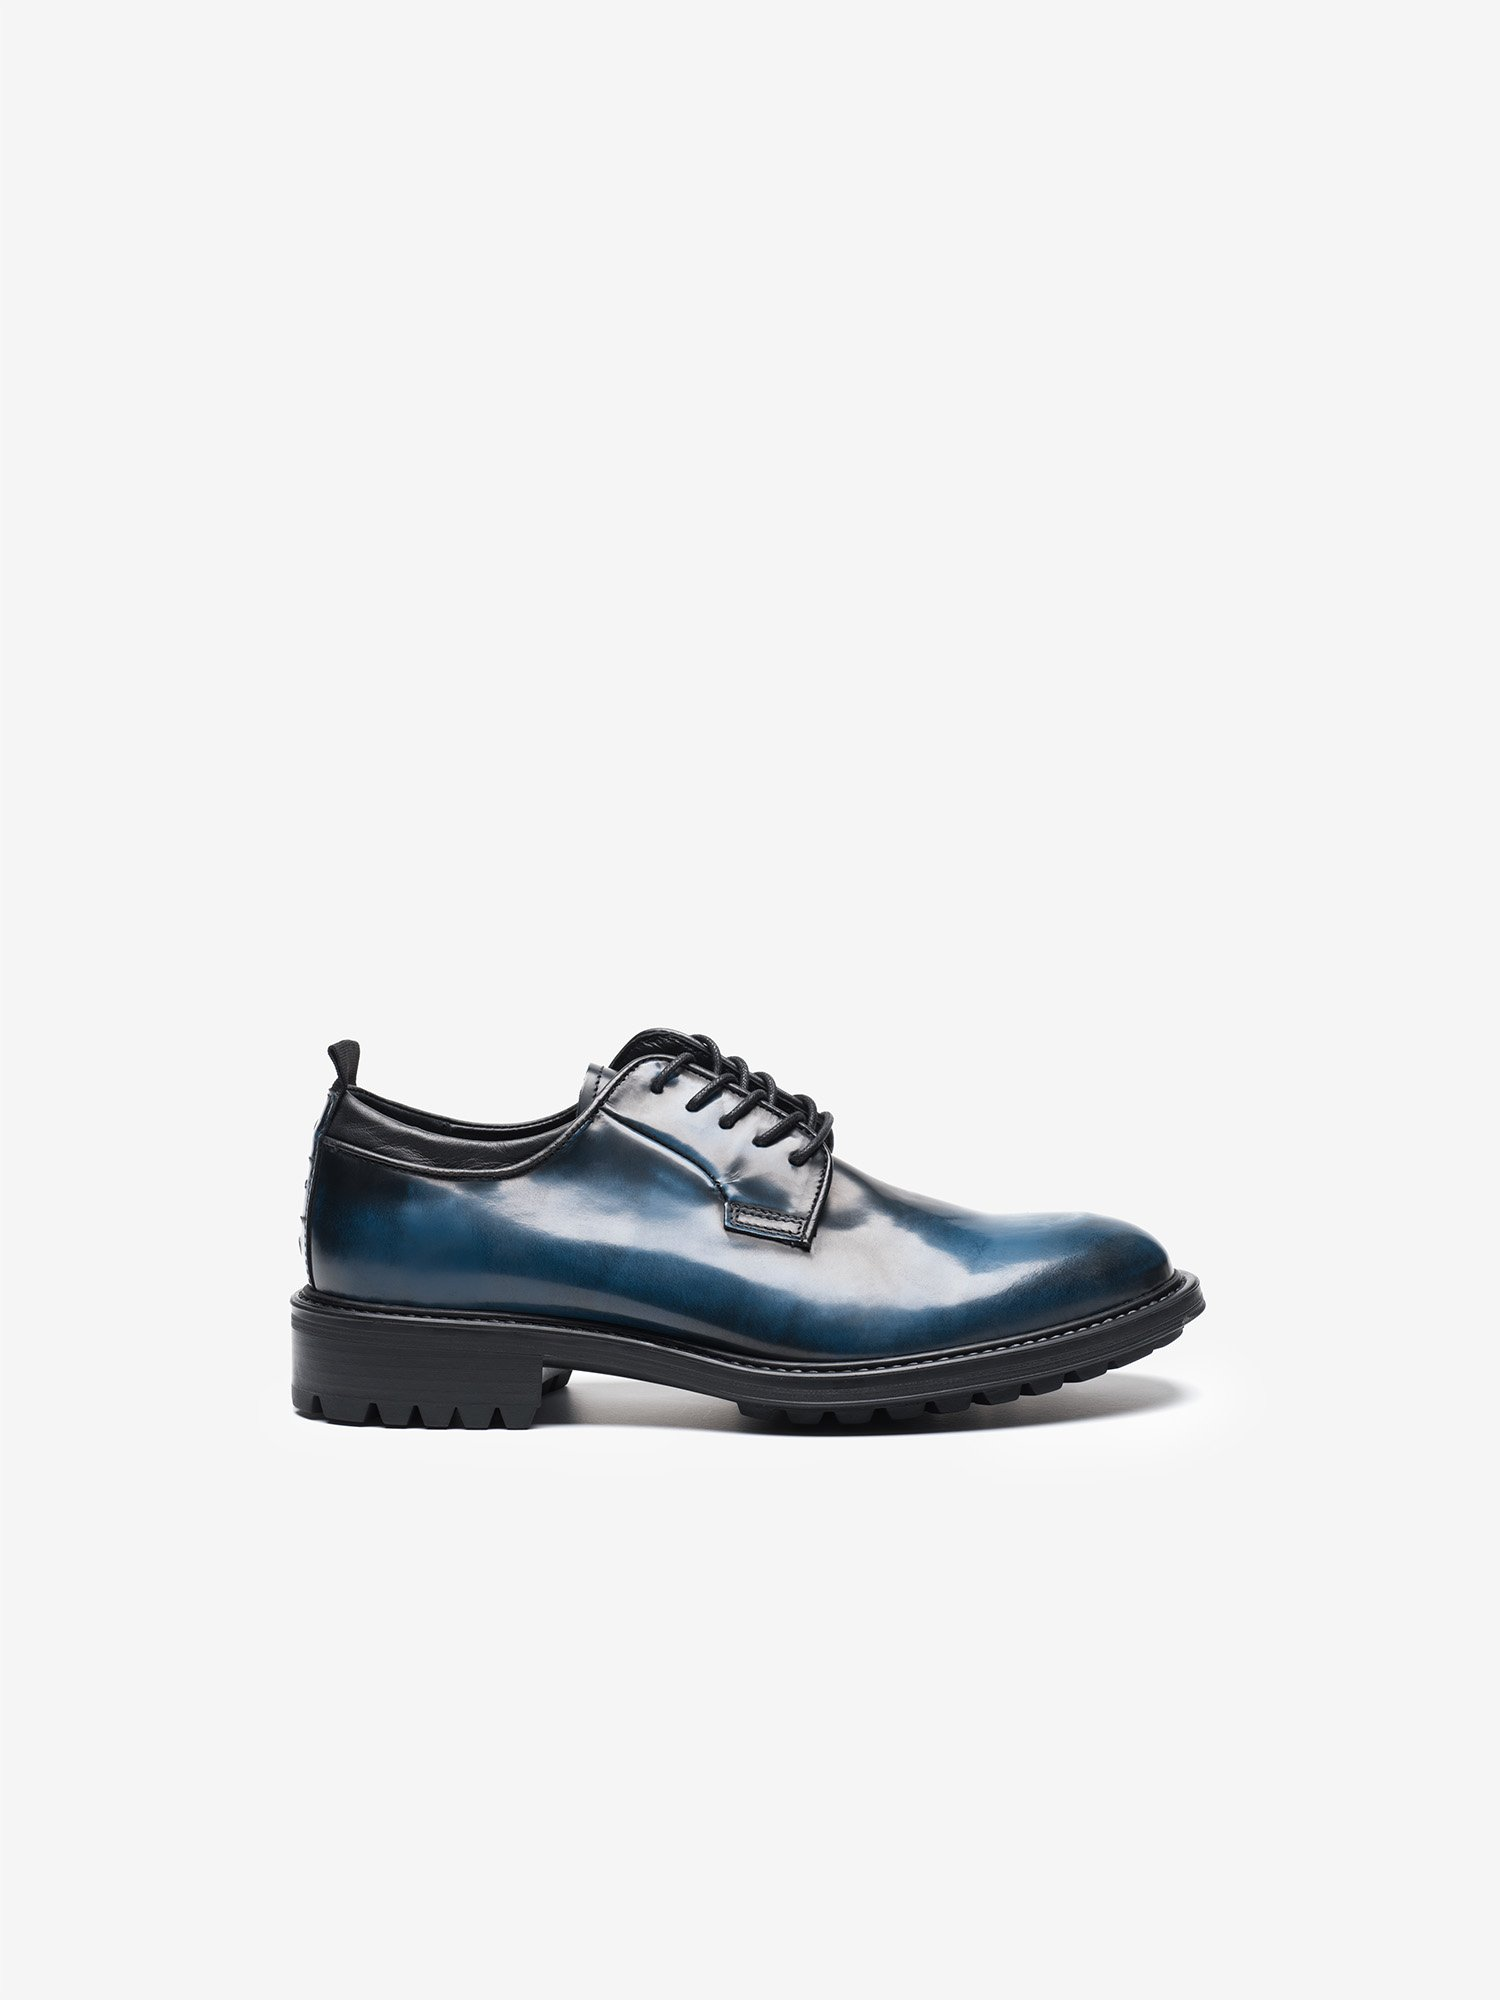 Blauer - OXFORD-SCHUHE IN LACKLEDER - Infinity Blue - Blauer